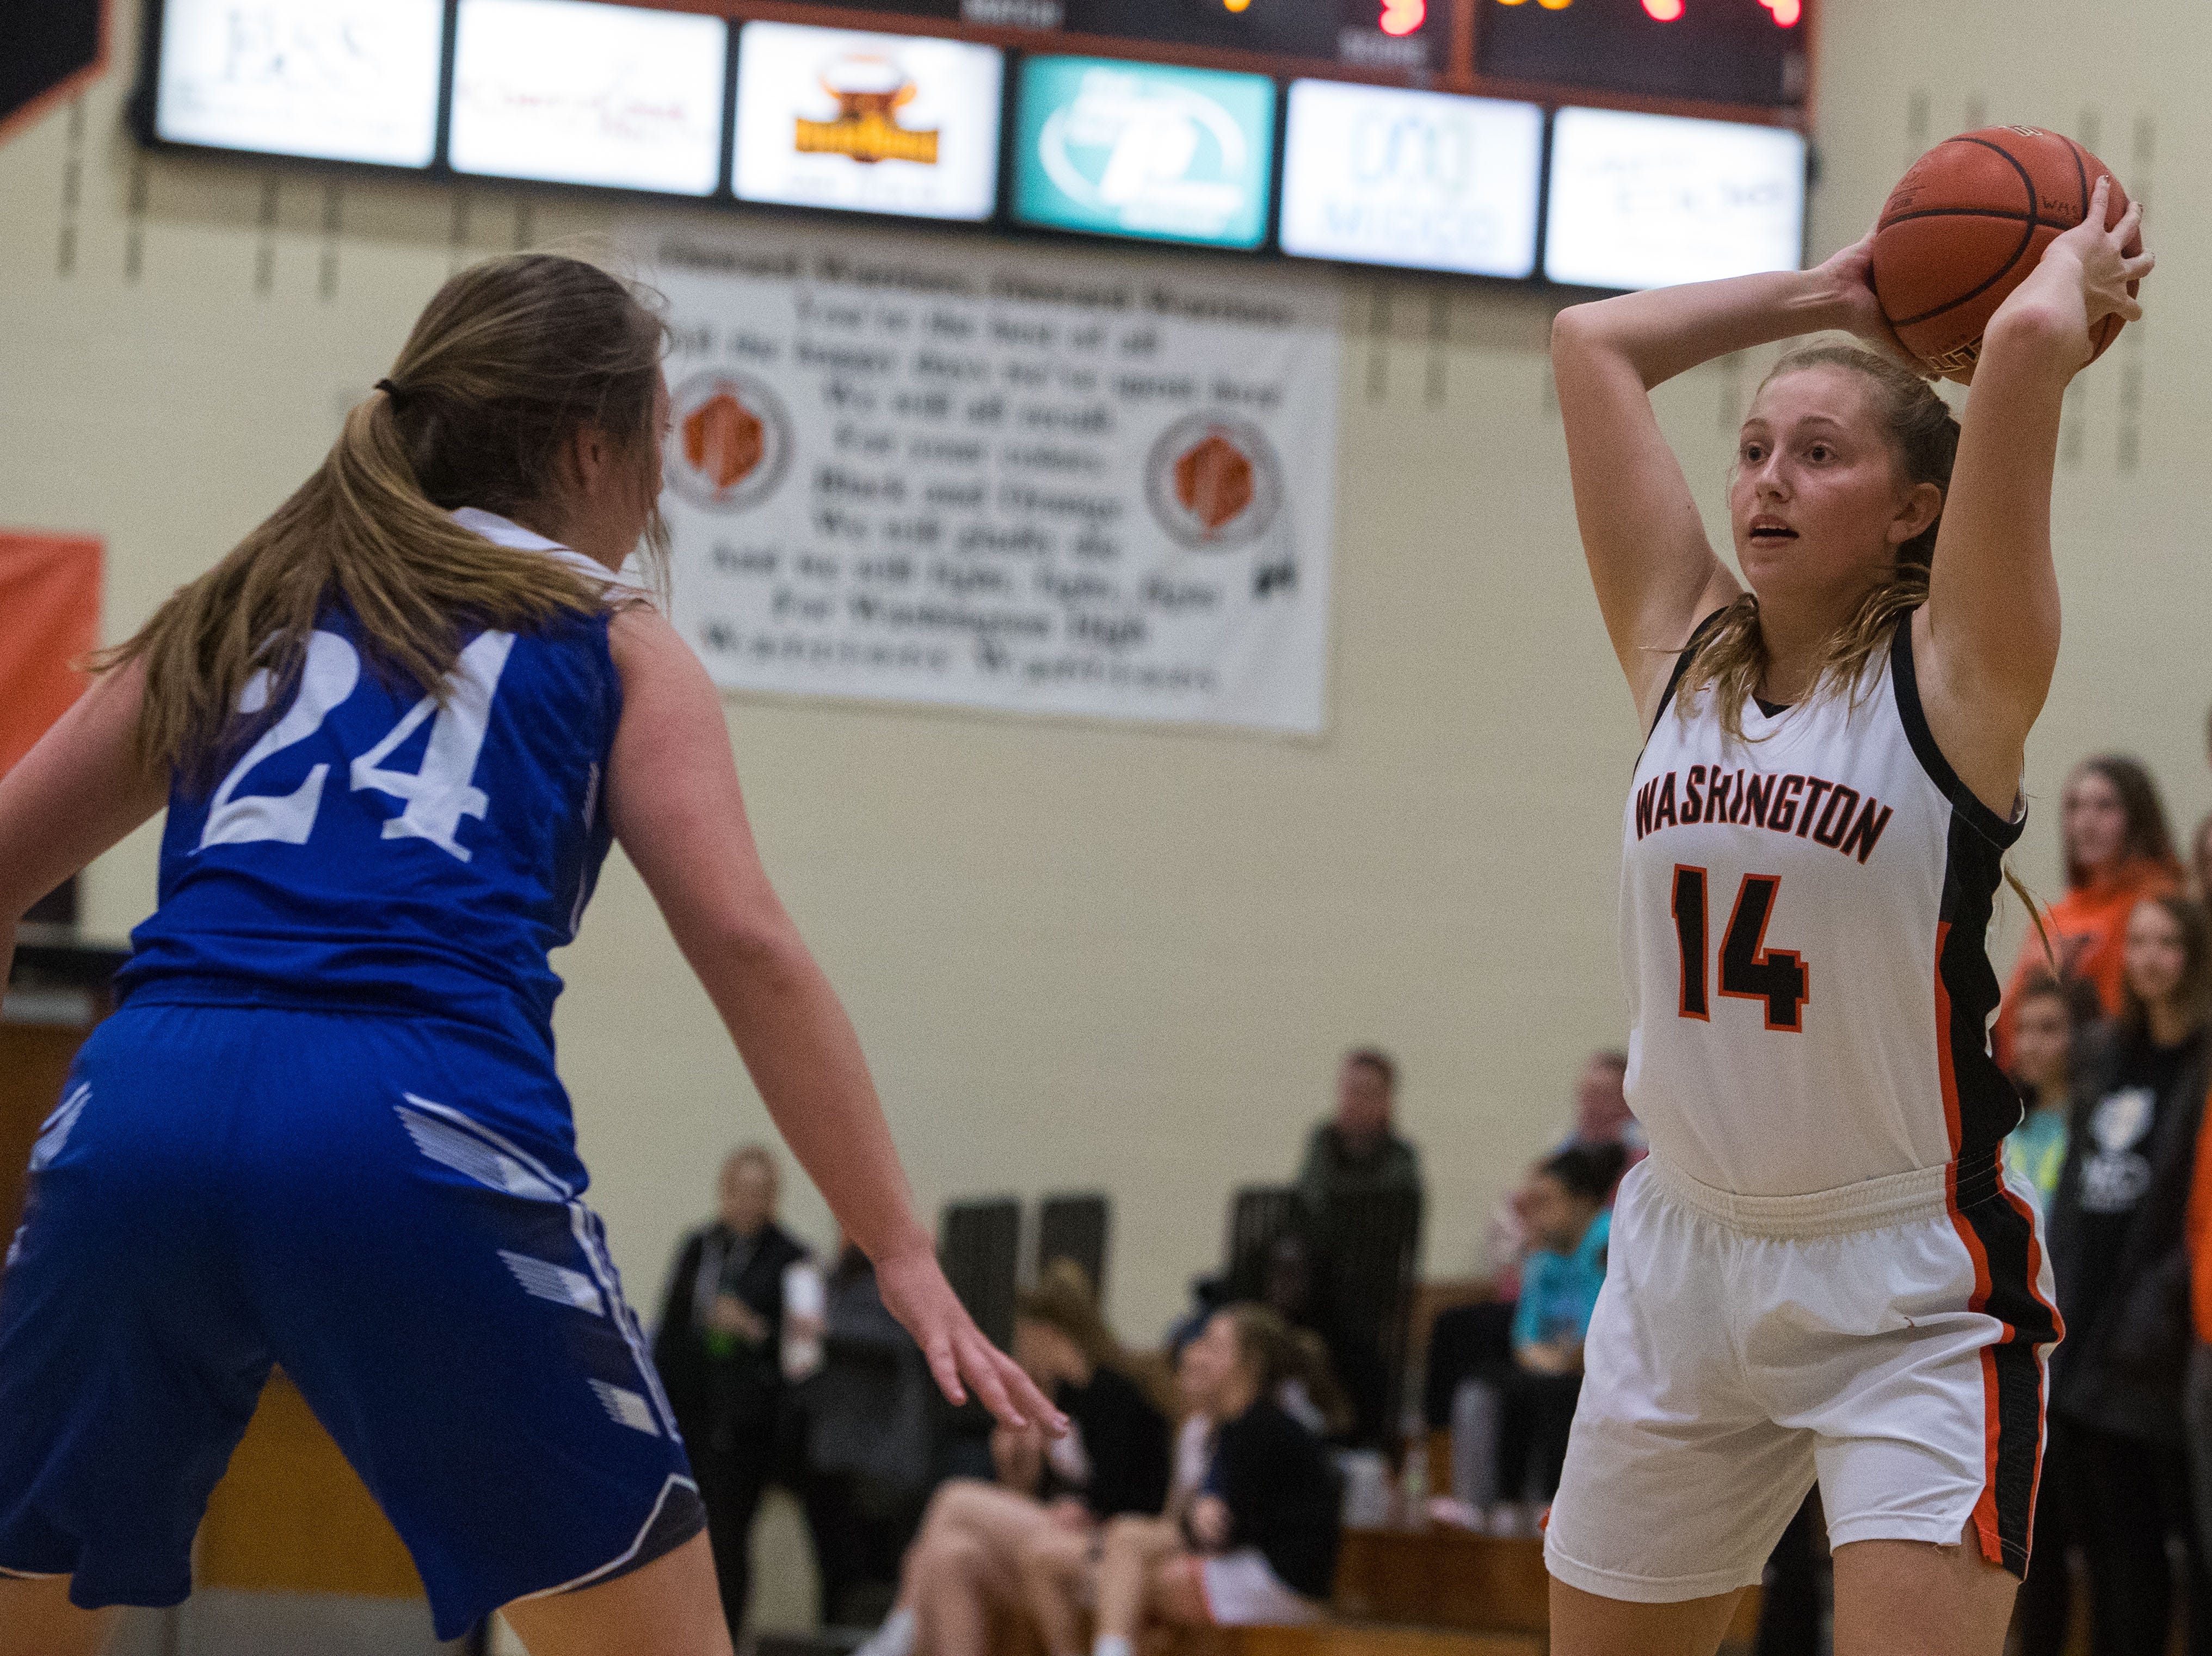 Washington's Rylyn Fink (14) looks to pass the ball during a game against Rapid City Stevens in Sioux Falls, S.D., Friday, Feb. 8, 2019.